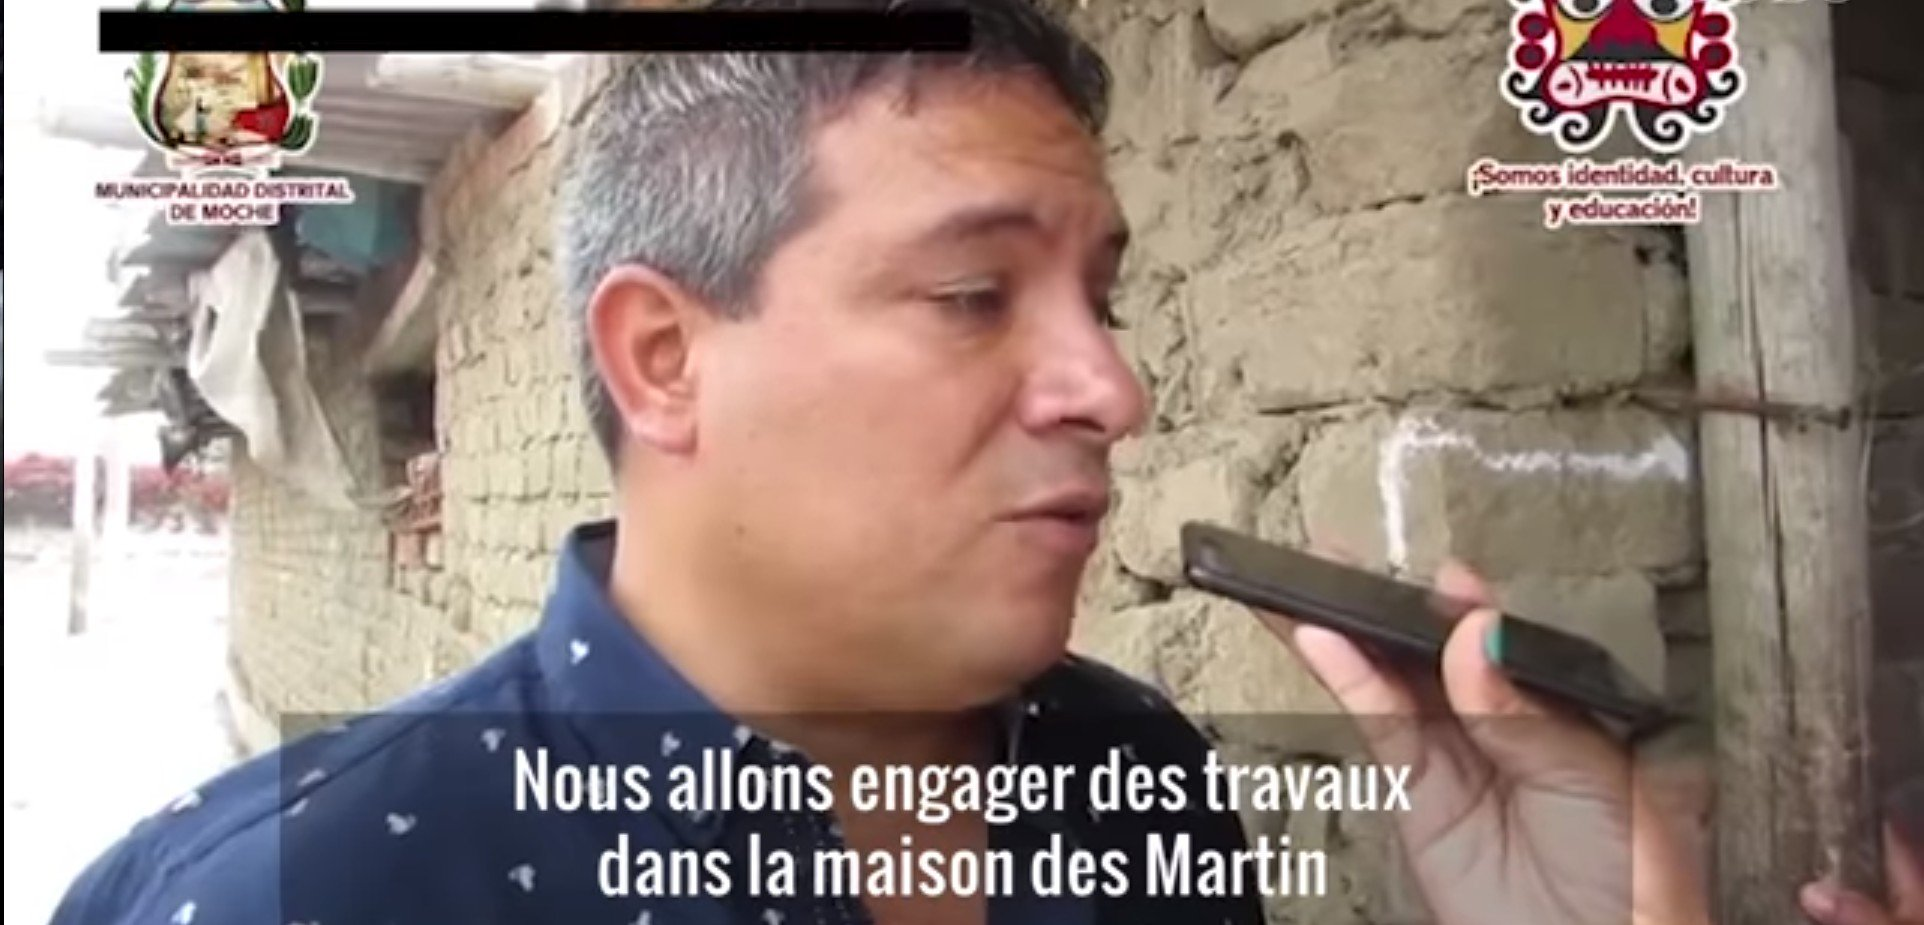 Le maire de Moche s'engageant à faire changer les choses. l Source: YouTube/ L'Obs